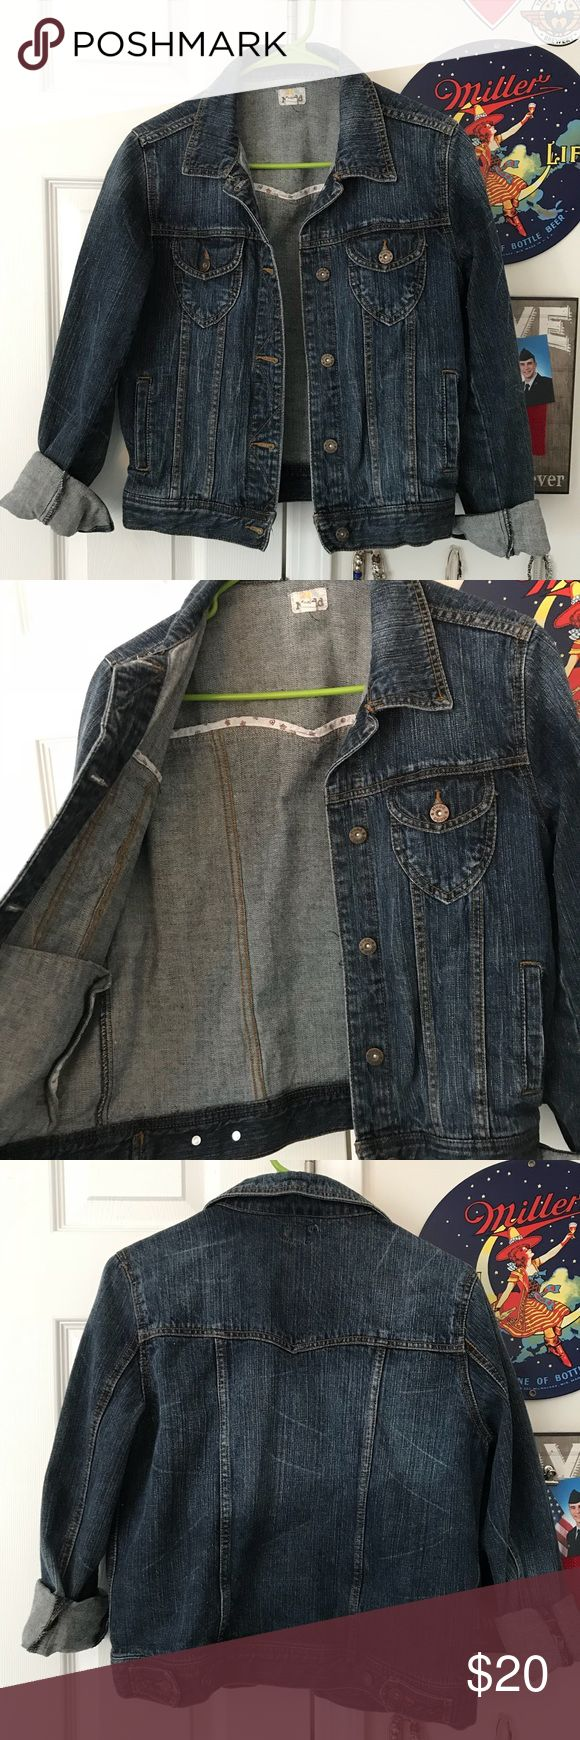 Mudd Jean Jacket Mudd Jean Jacket. Super cute style and fit. Only worn once, in great condition. Love the fade, great over all types of tops and dresses! Make an offer! Mudd Jackets & Coats Jean Jackets